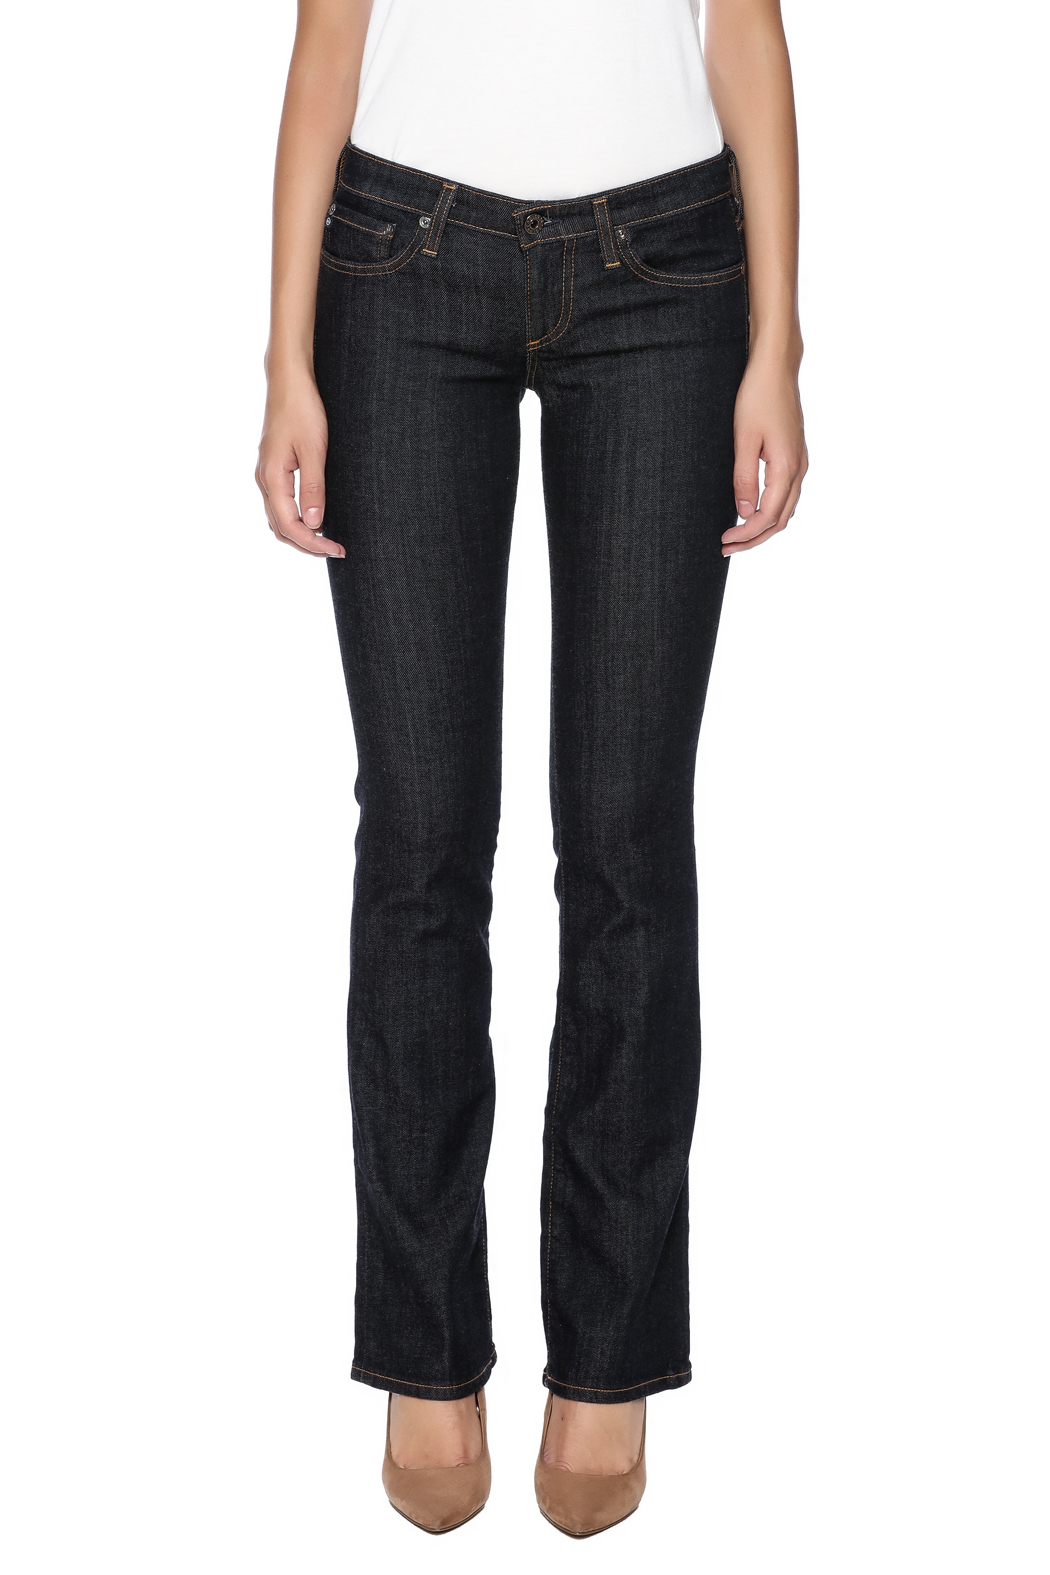 AG Adriano Goldschmied Olivia Boot Cut - Side Cropped Image